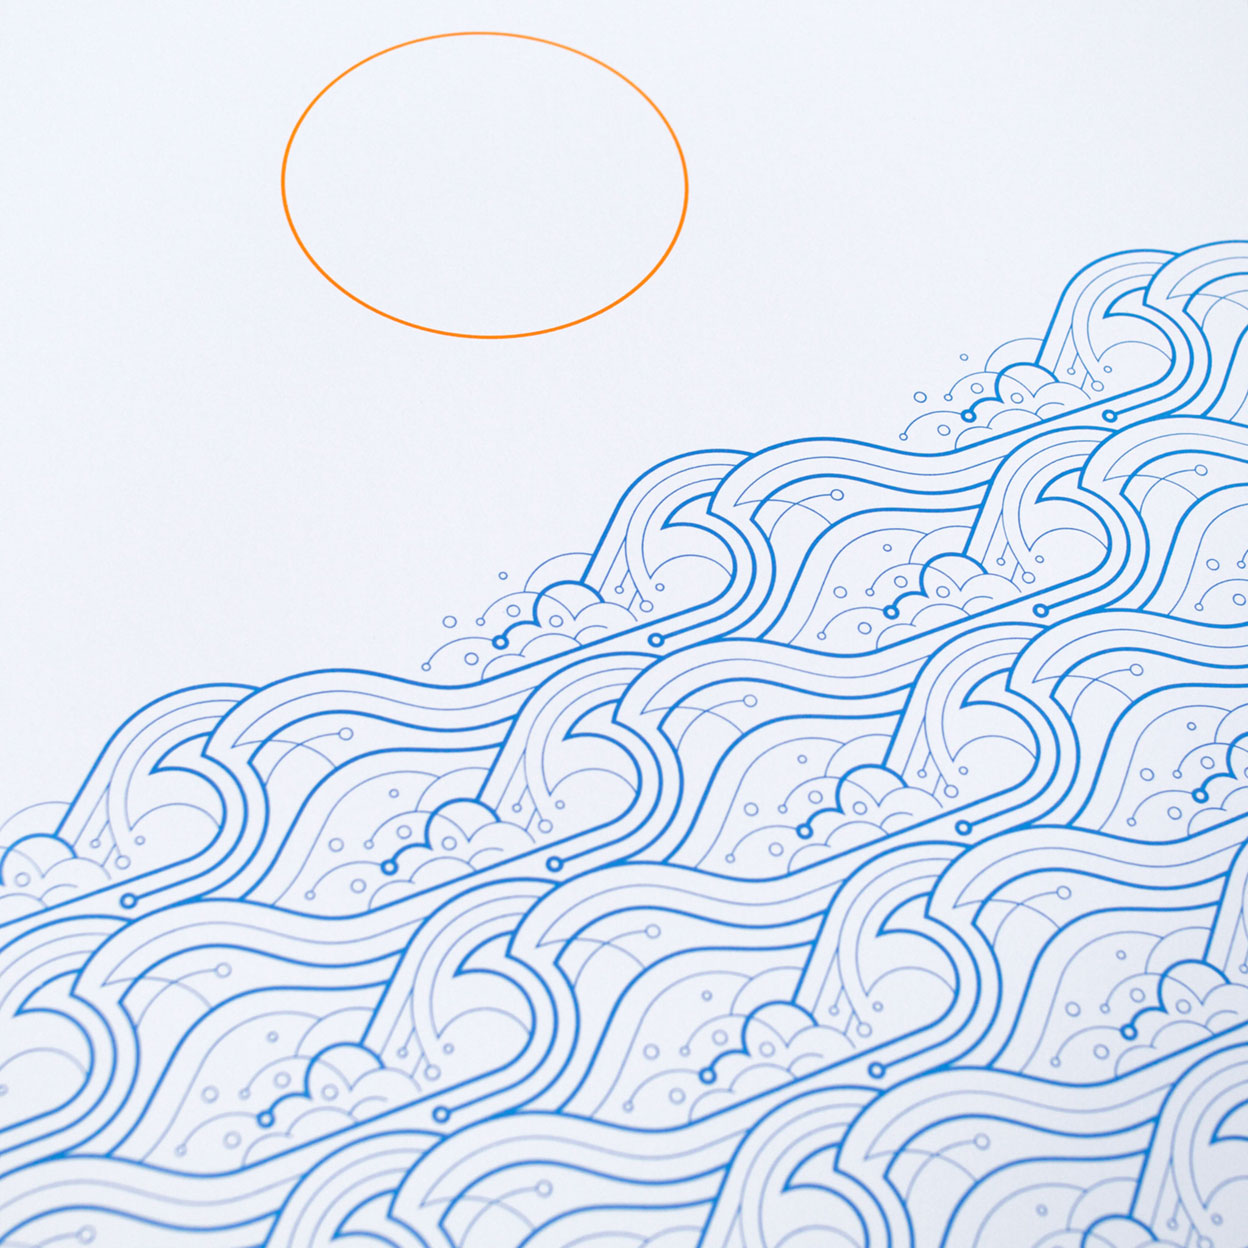 Waves A2 Screen Print by Dan Forster created for The Lost Fox